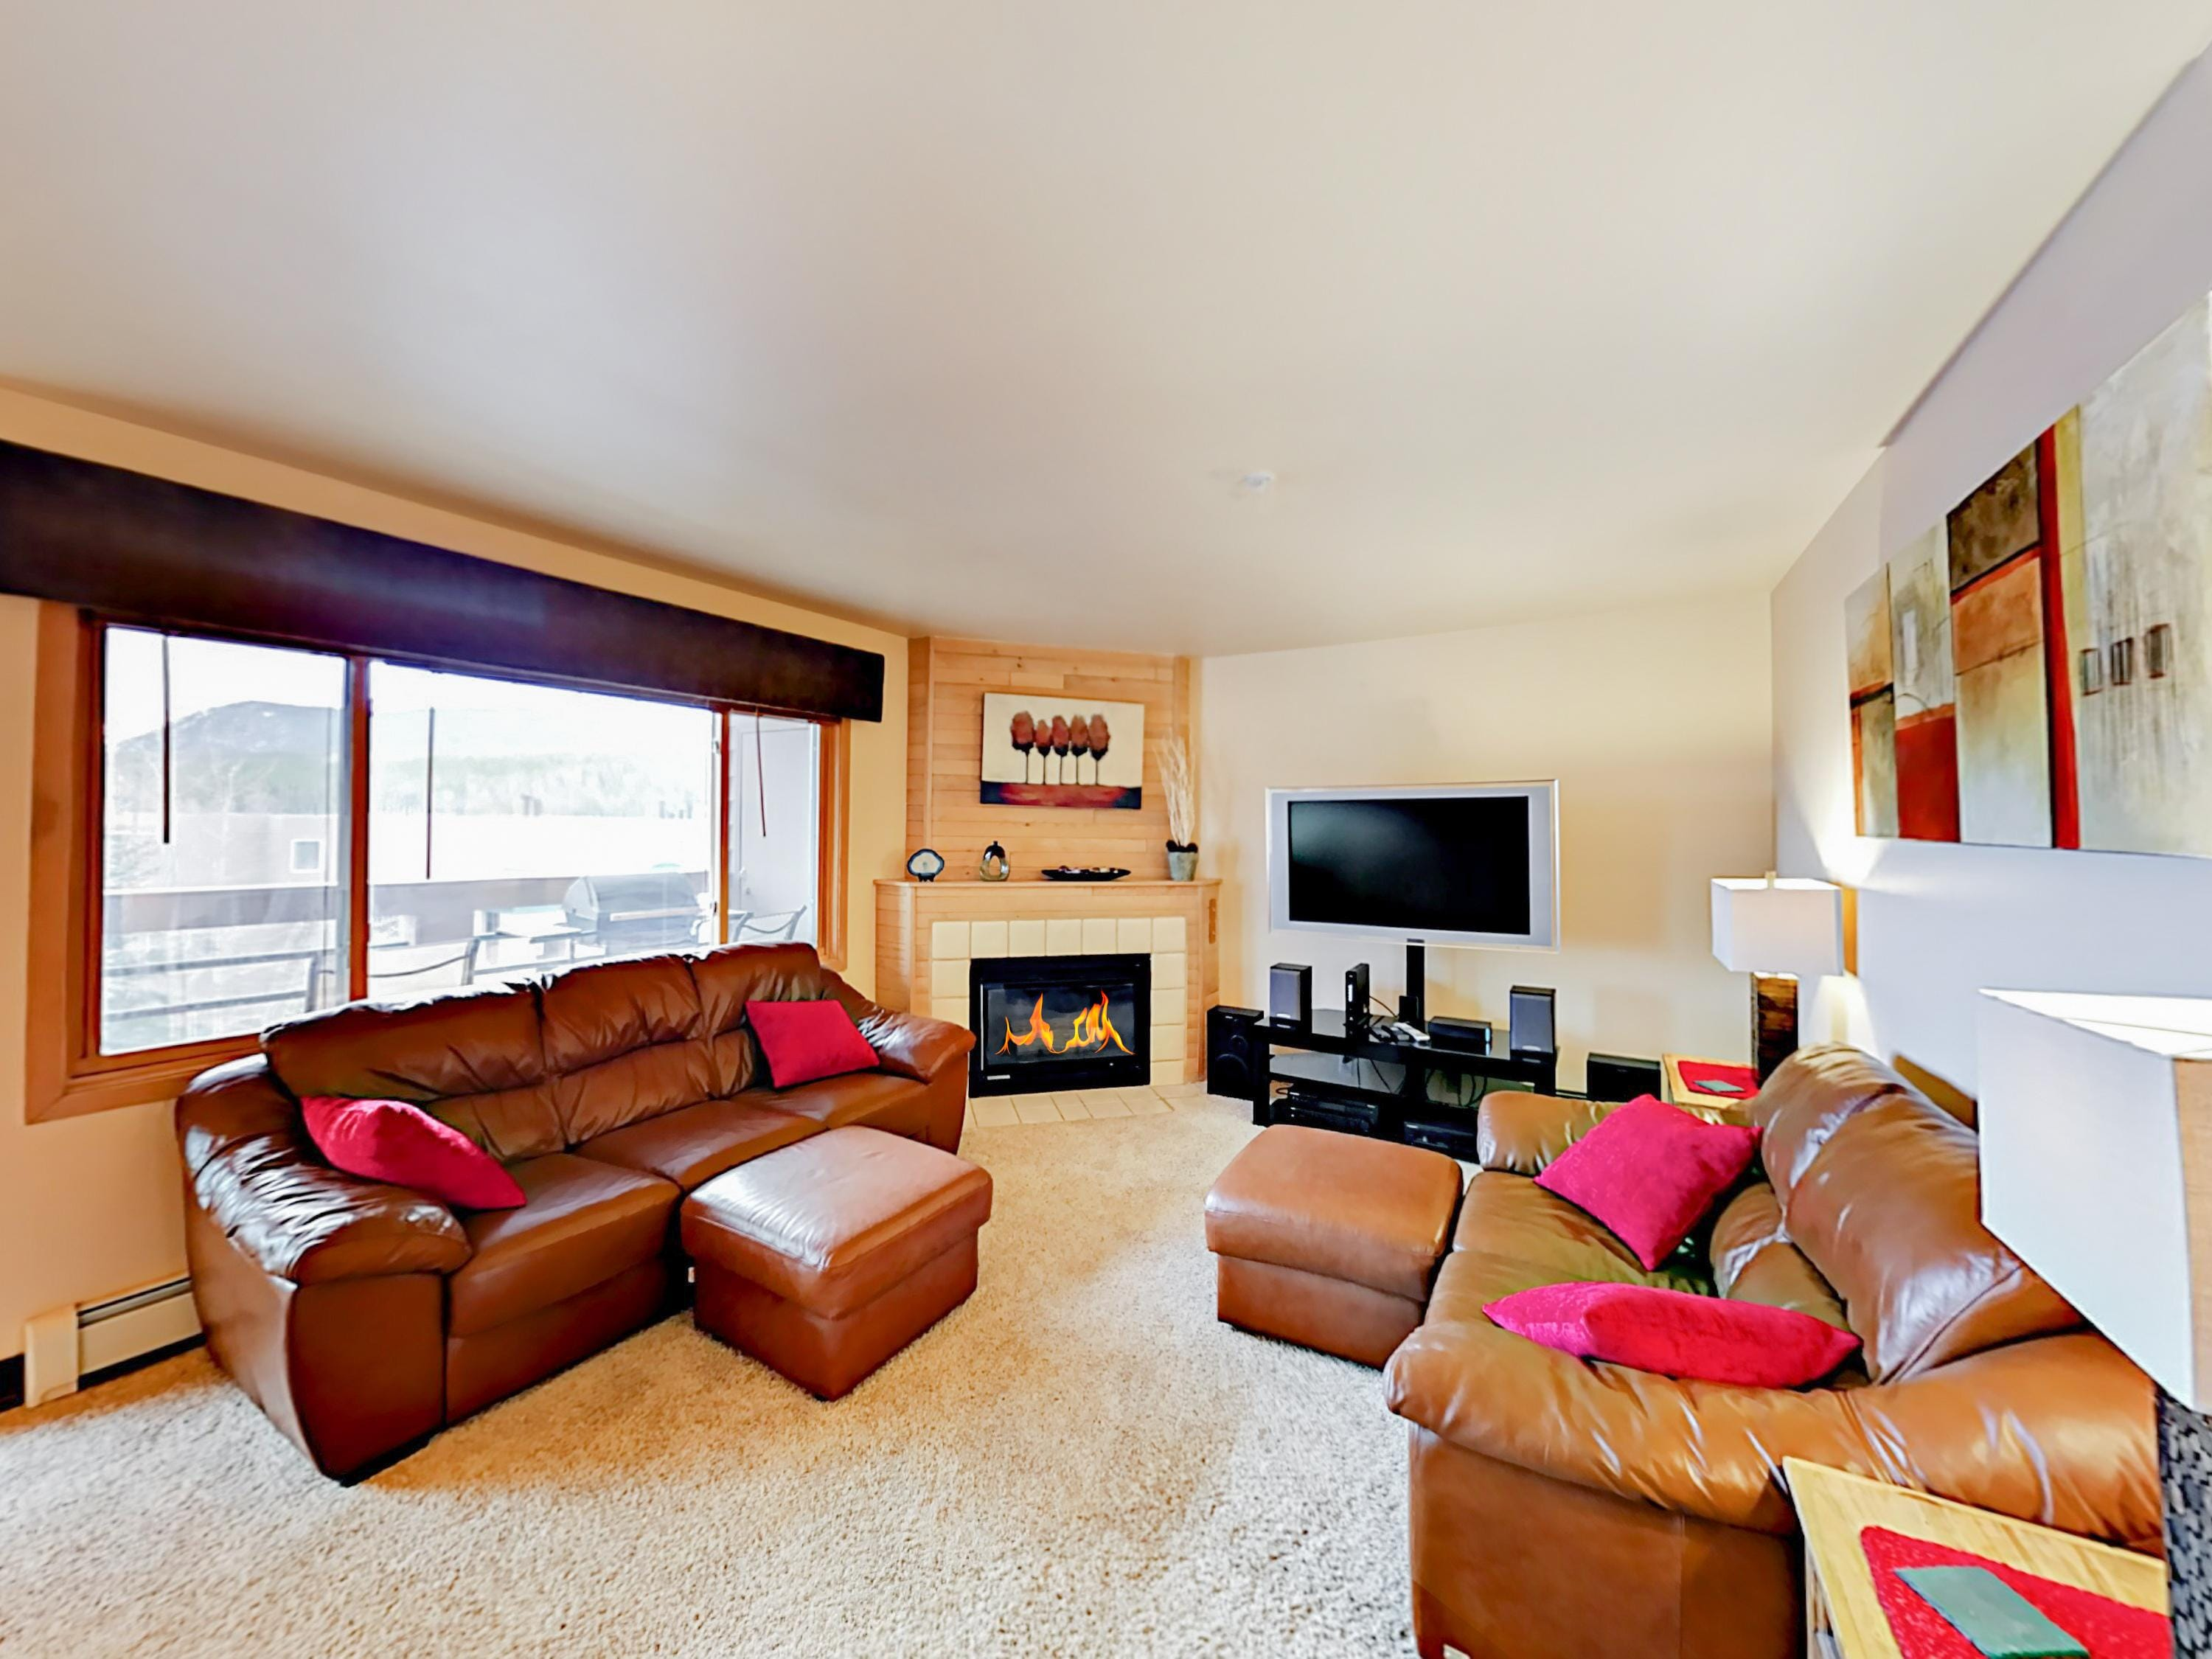 Enjoy the inviting gas fireplace and incredible views out the picture windows in the living room.